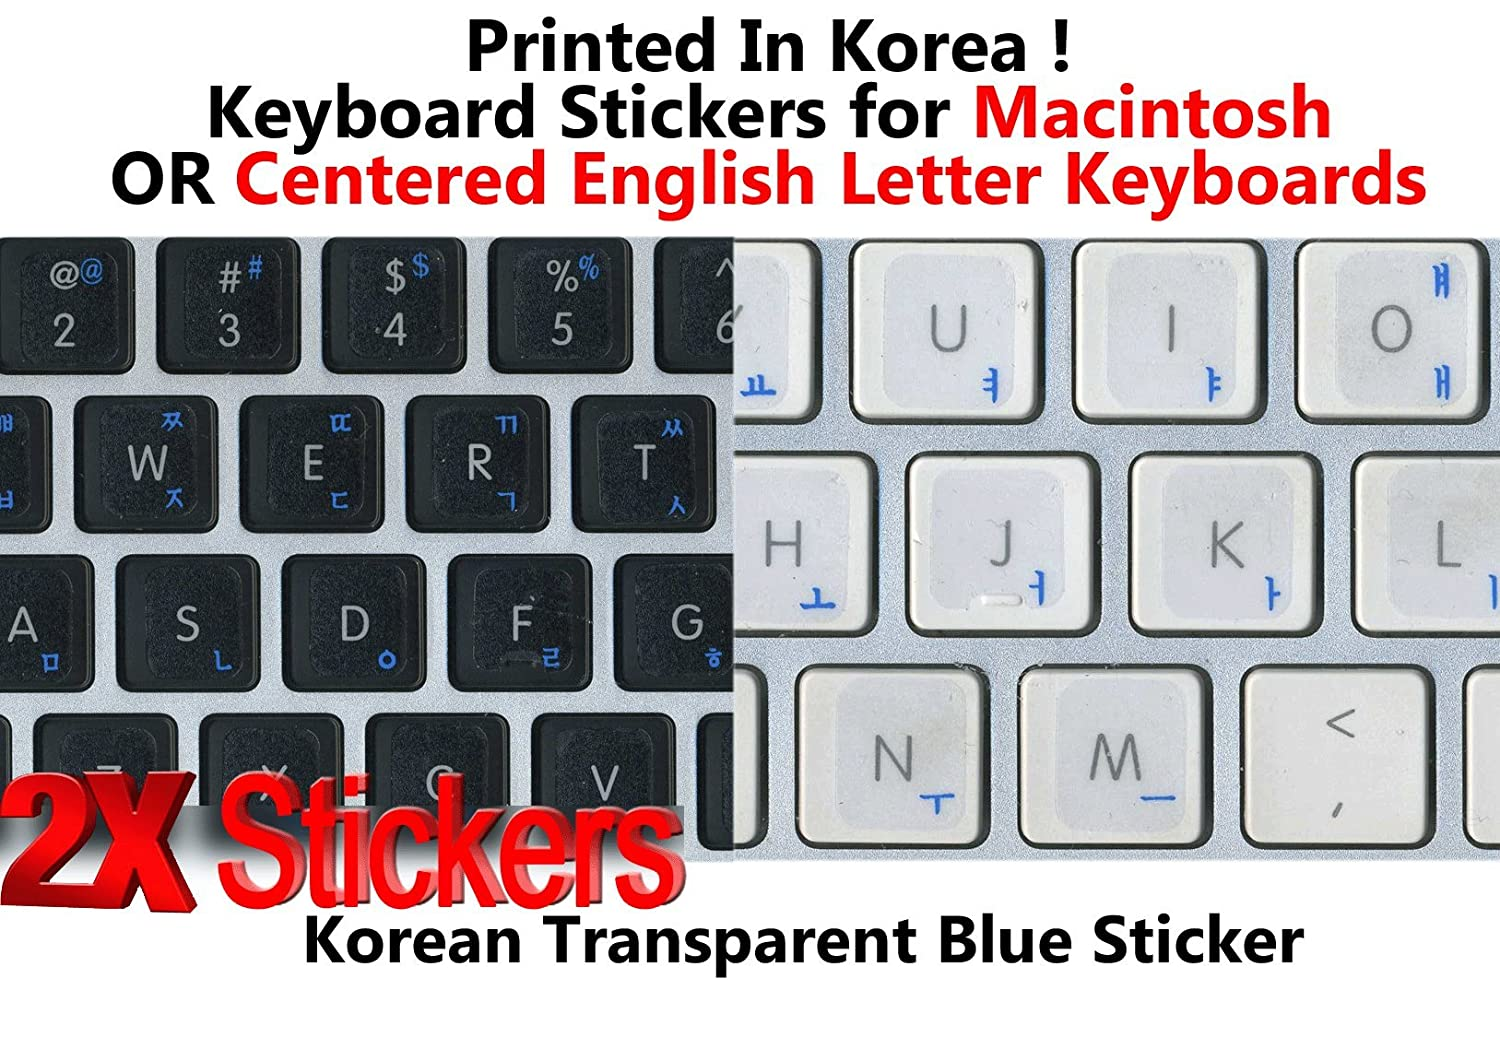 Amazon 2 Stickers Deal Korean Keyboard Stickers With Blue